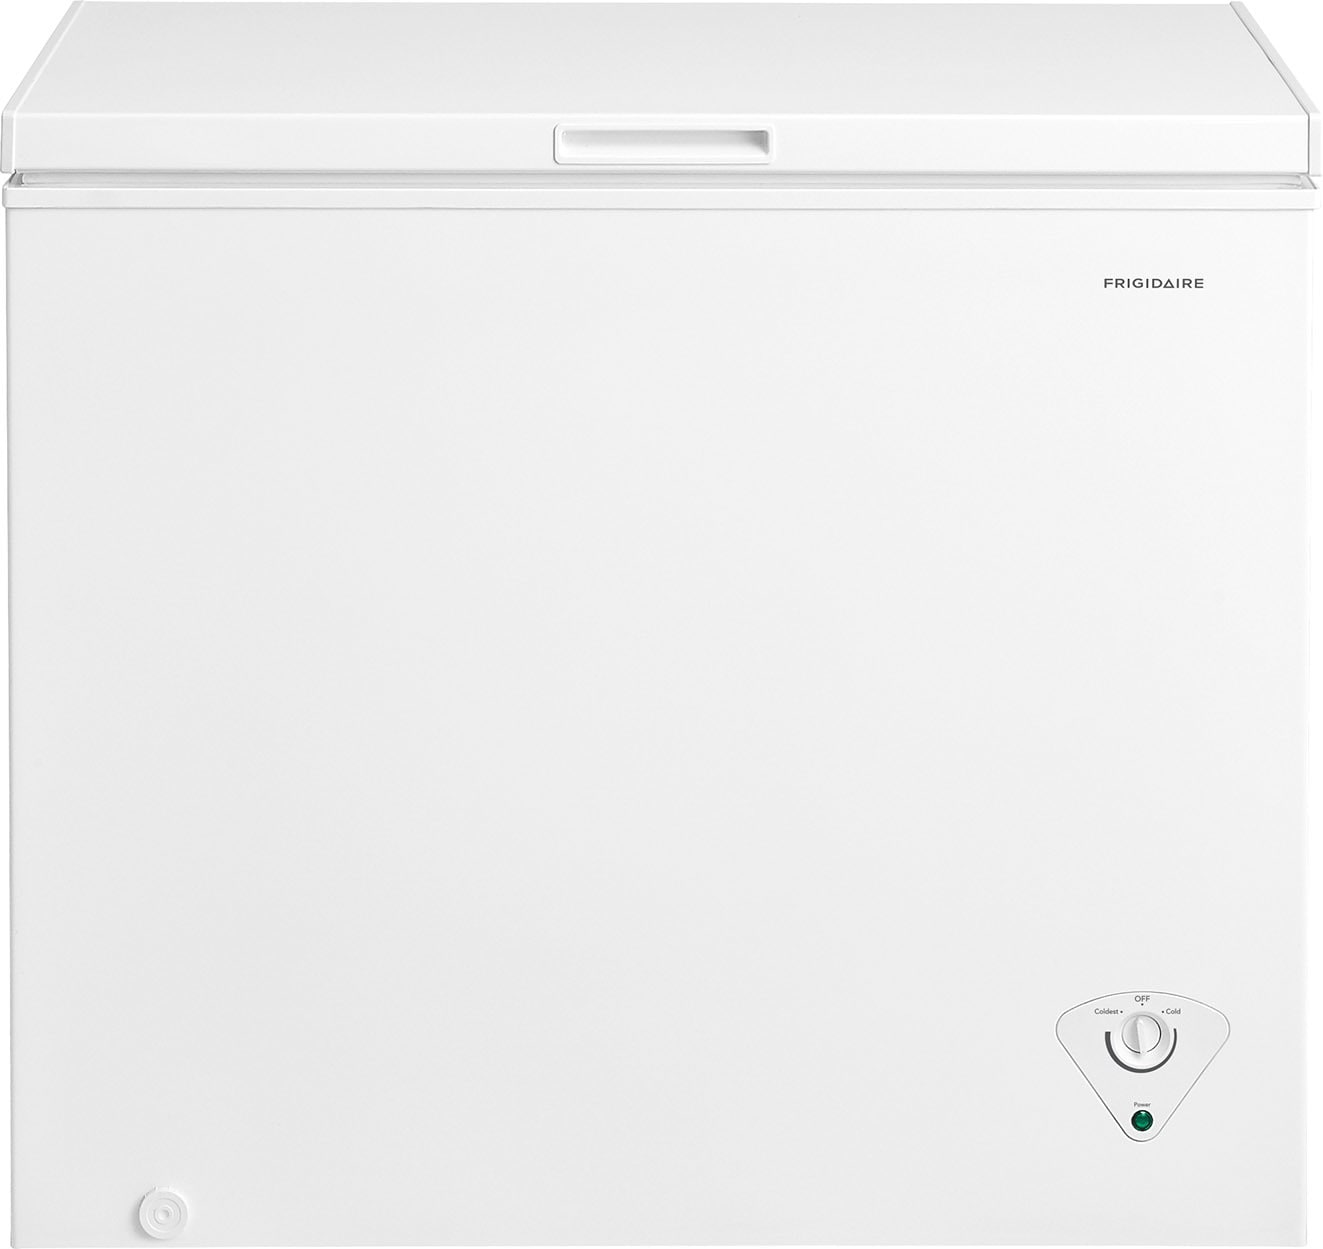 Frigidaire White Chest Freezer (7.0 Cu. Ft.) - FFFC07M1TW